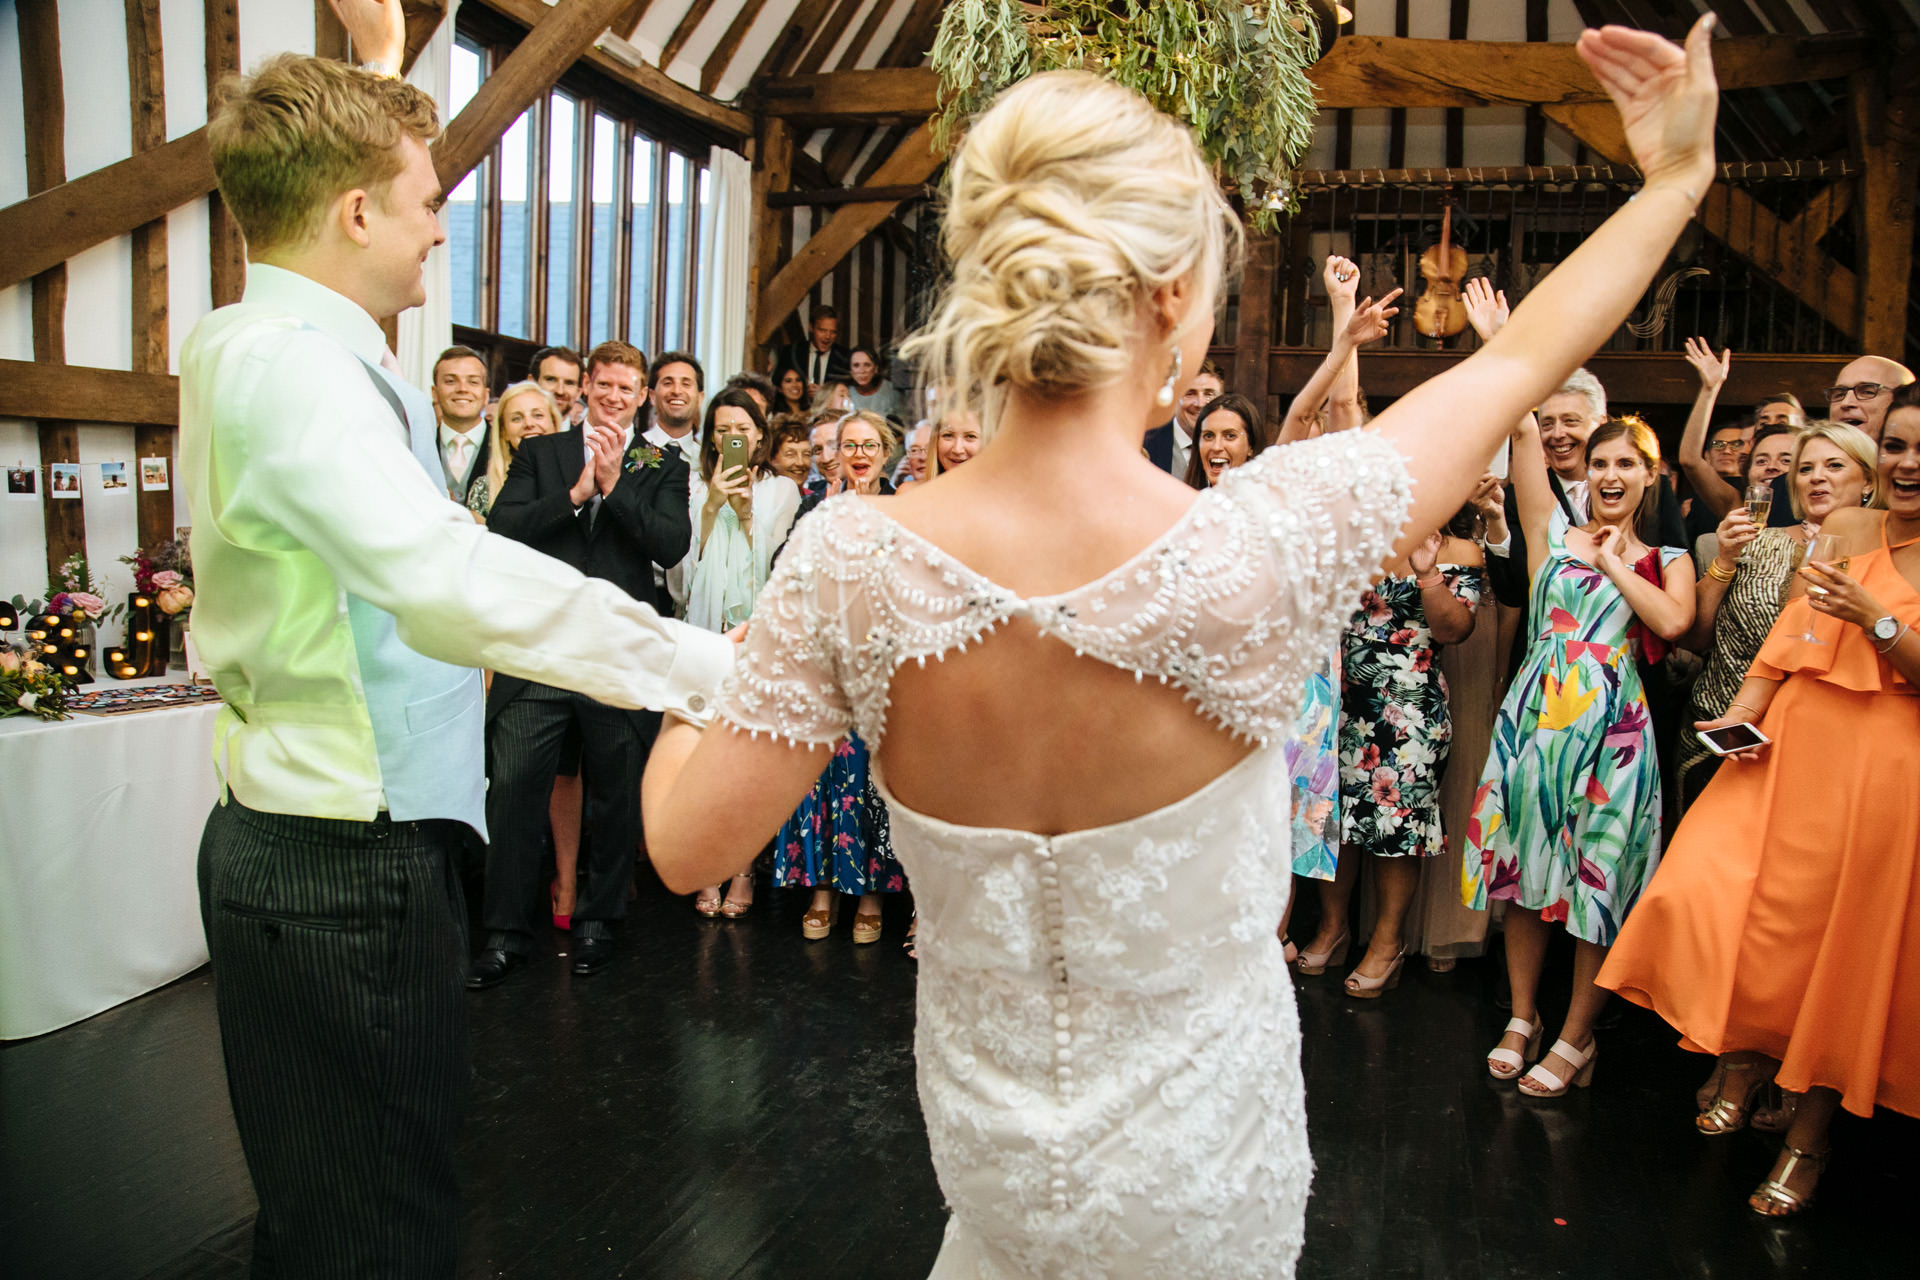 bride and groom signal for their guests to join them on the dance floor